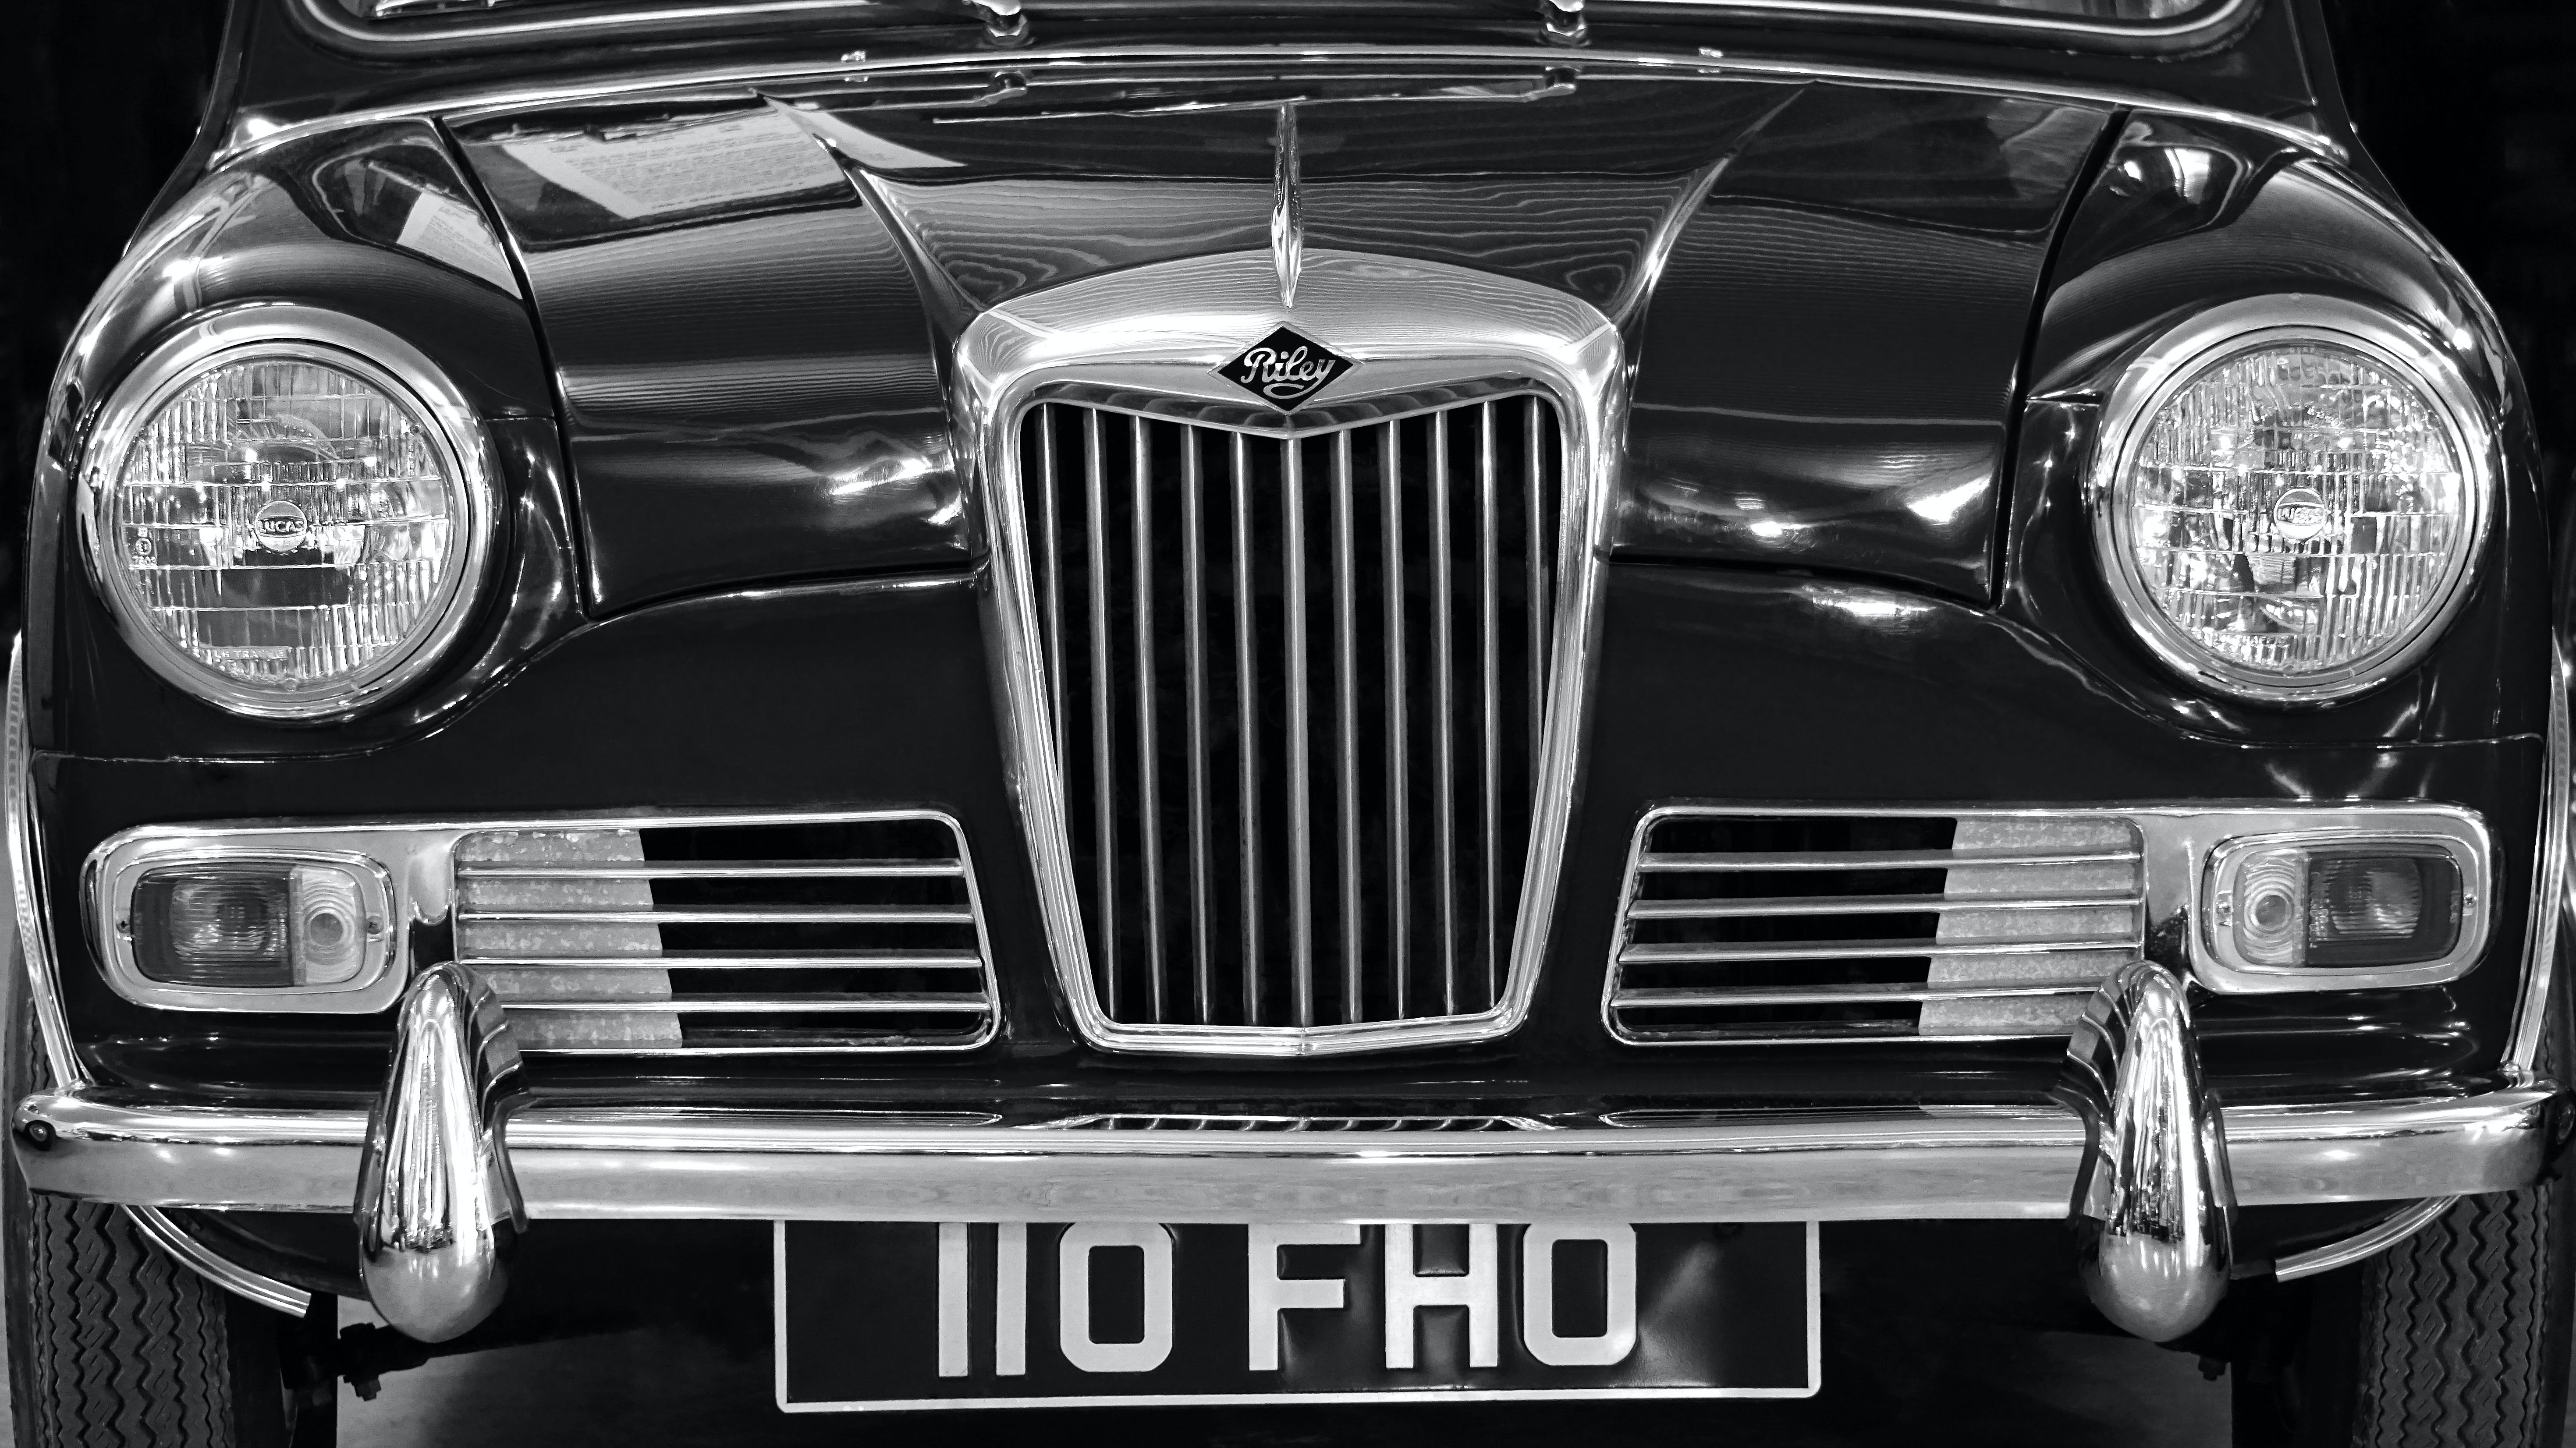 Car in Front View Showing Grille